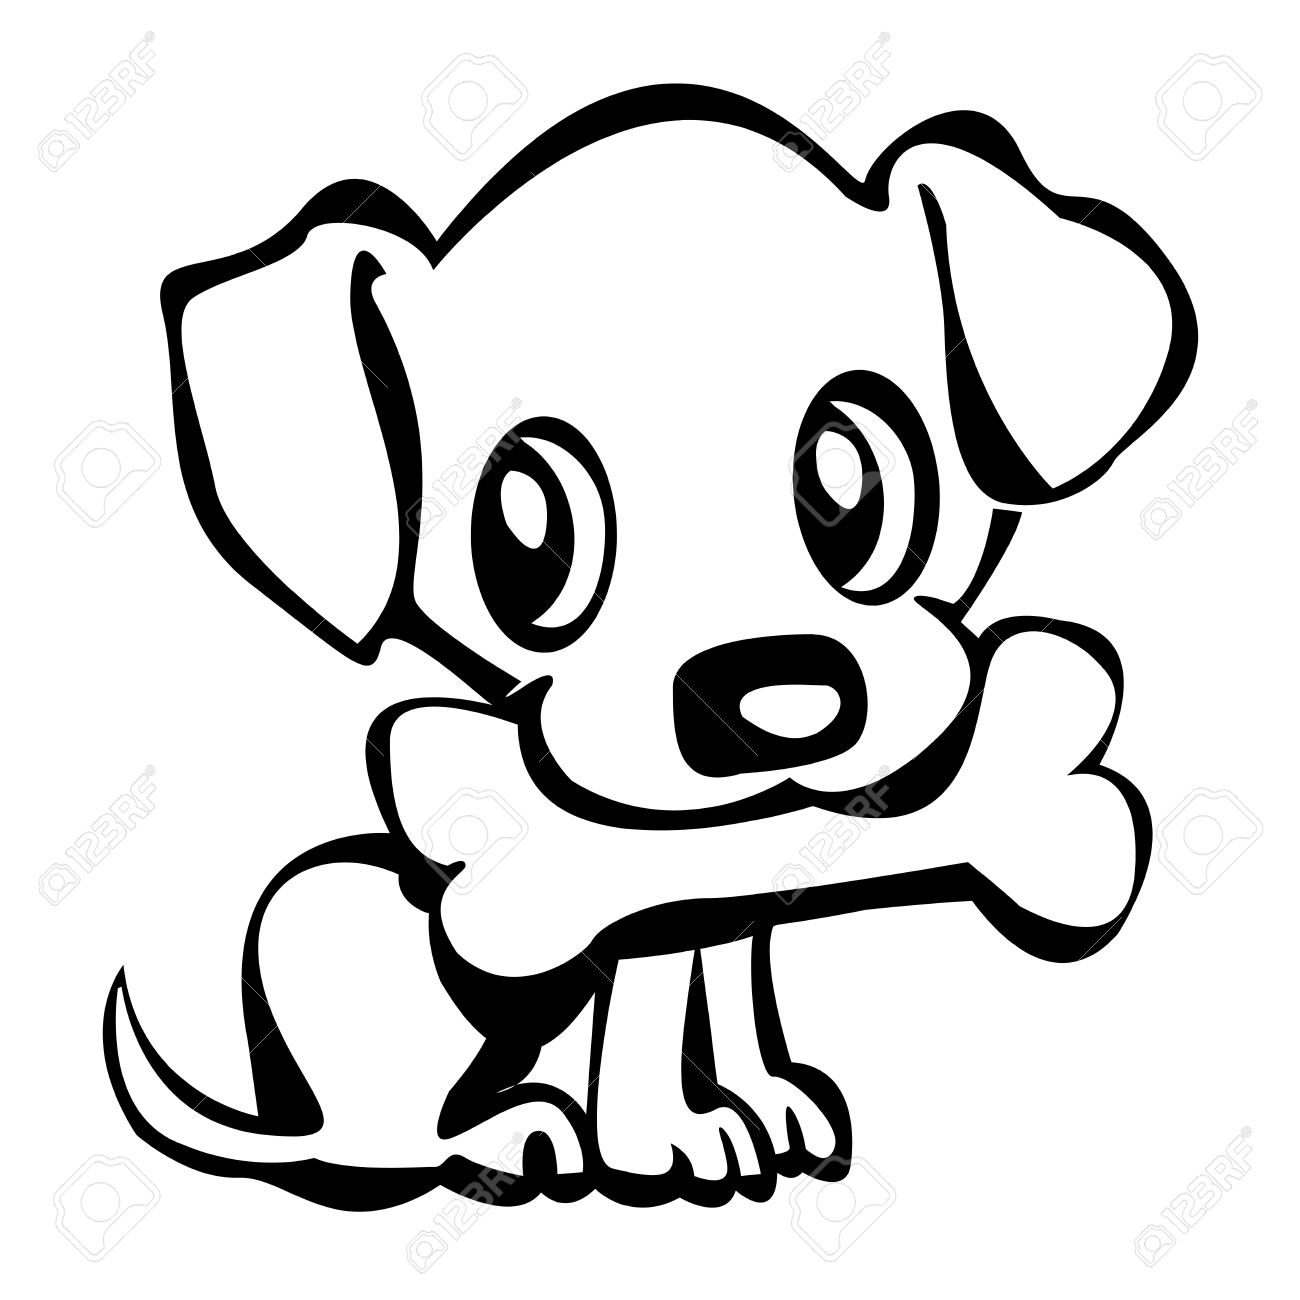 Free Simple Line Drawing Of A Dog Download Free Clip Art